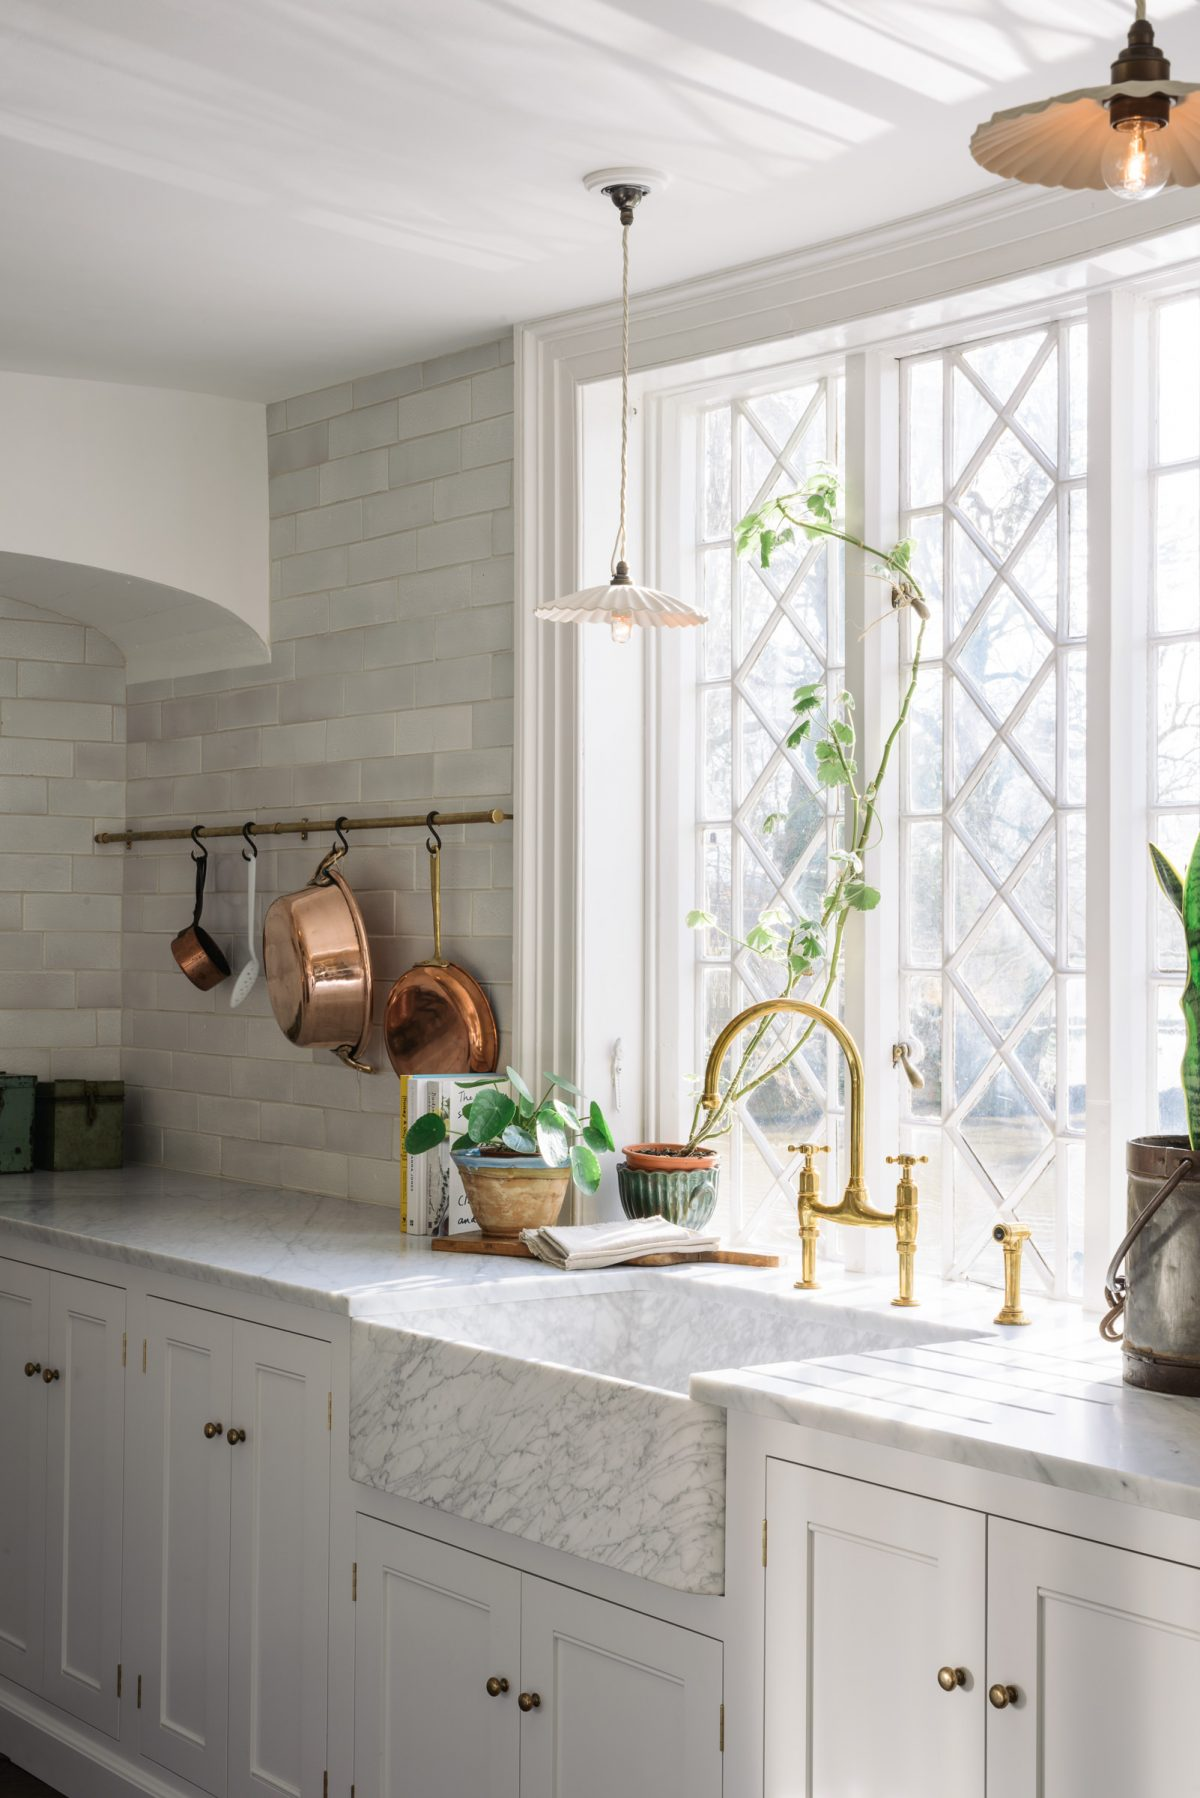 Carrara marble worktops and a deVOL Milano Penthouse marble sink, a dreamy combination.